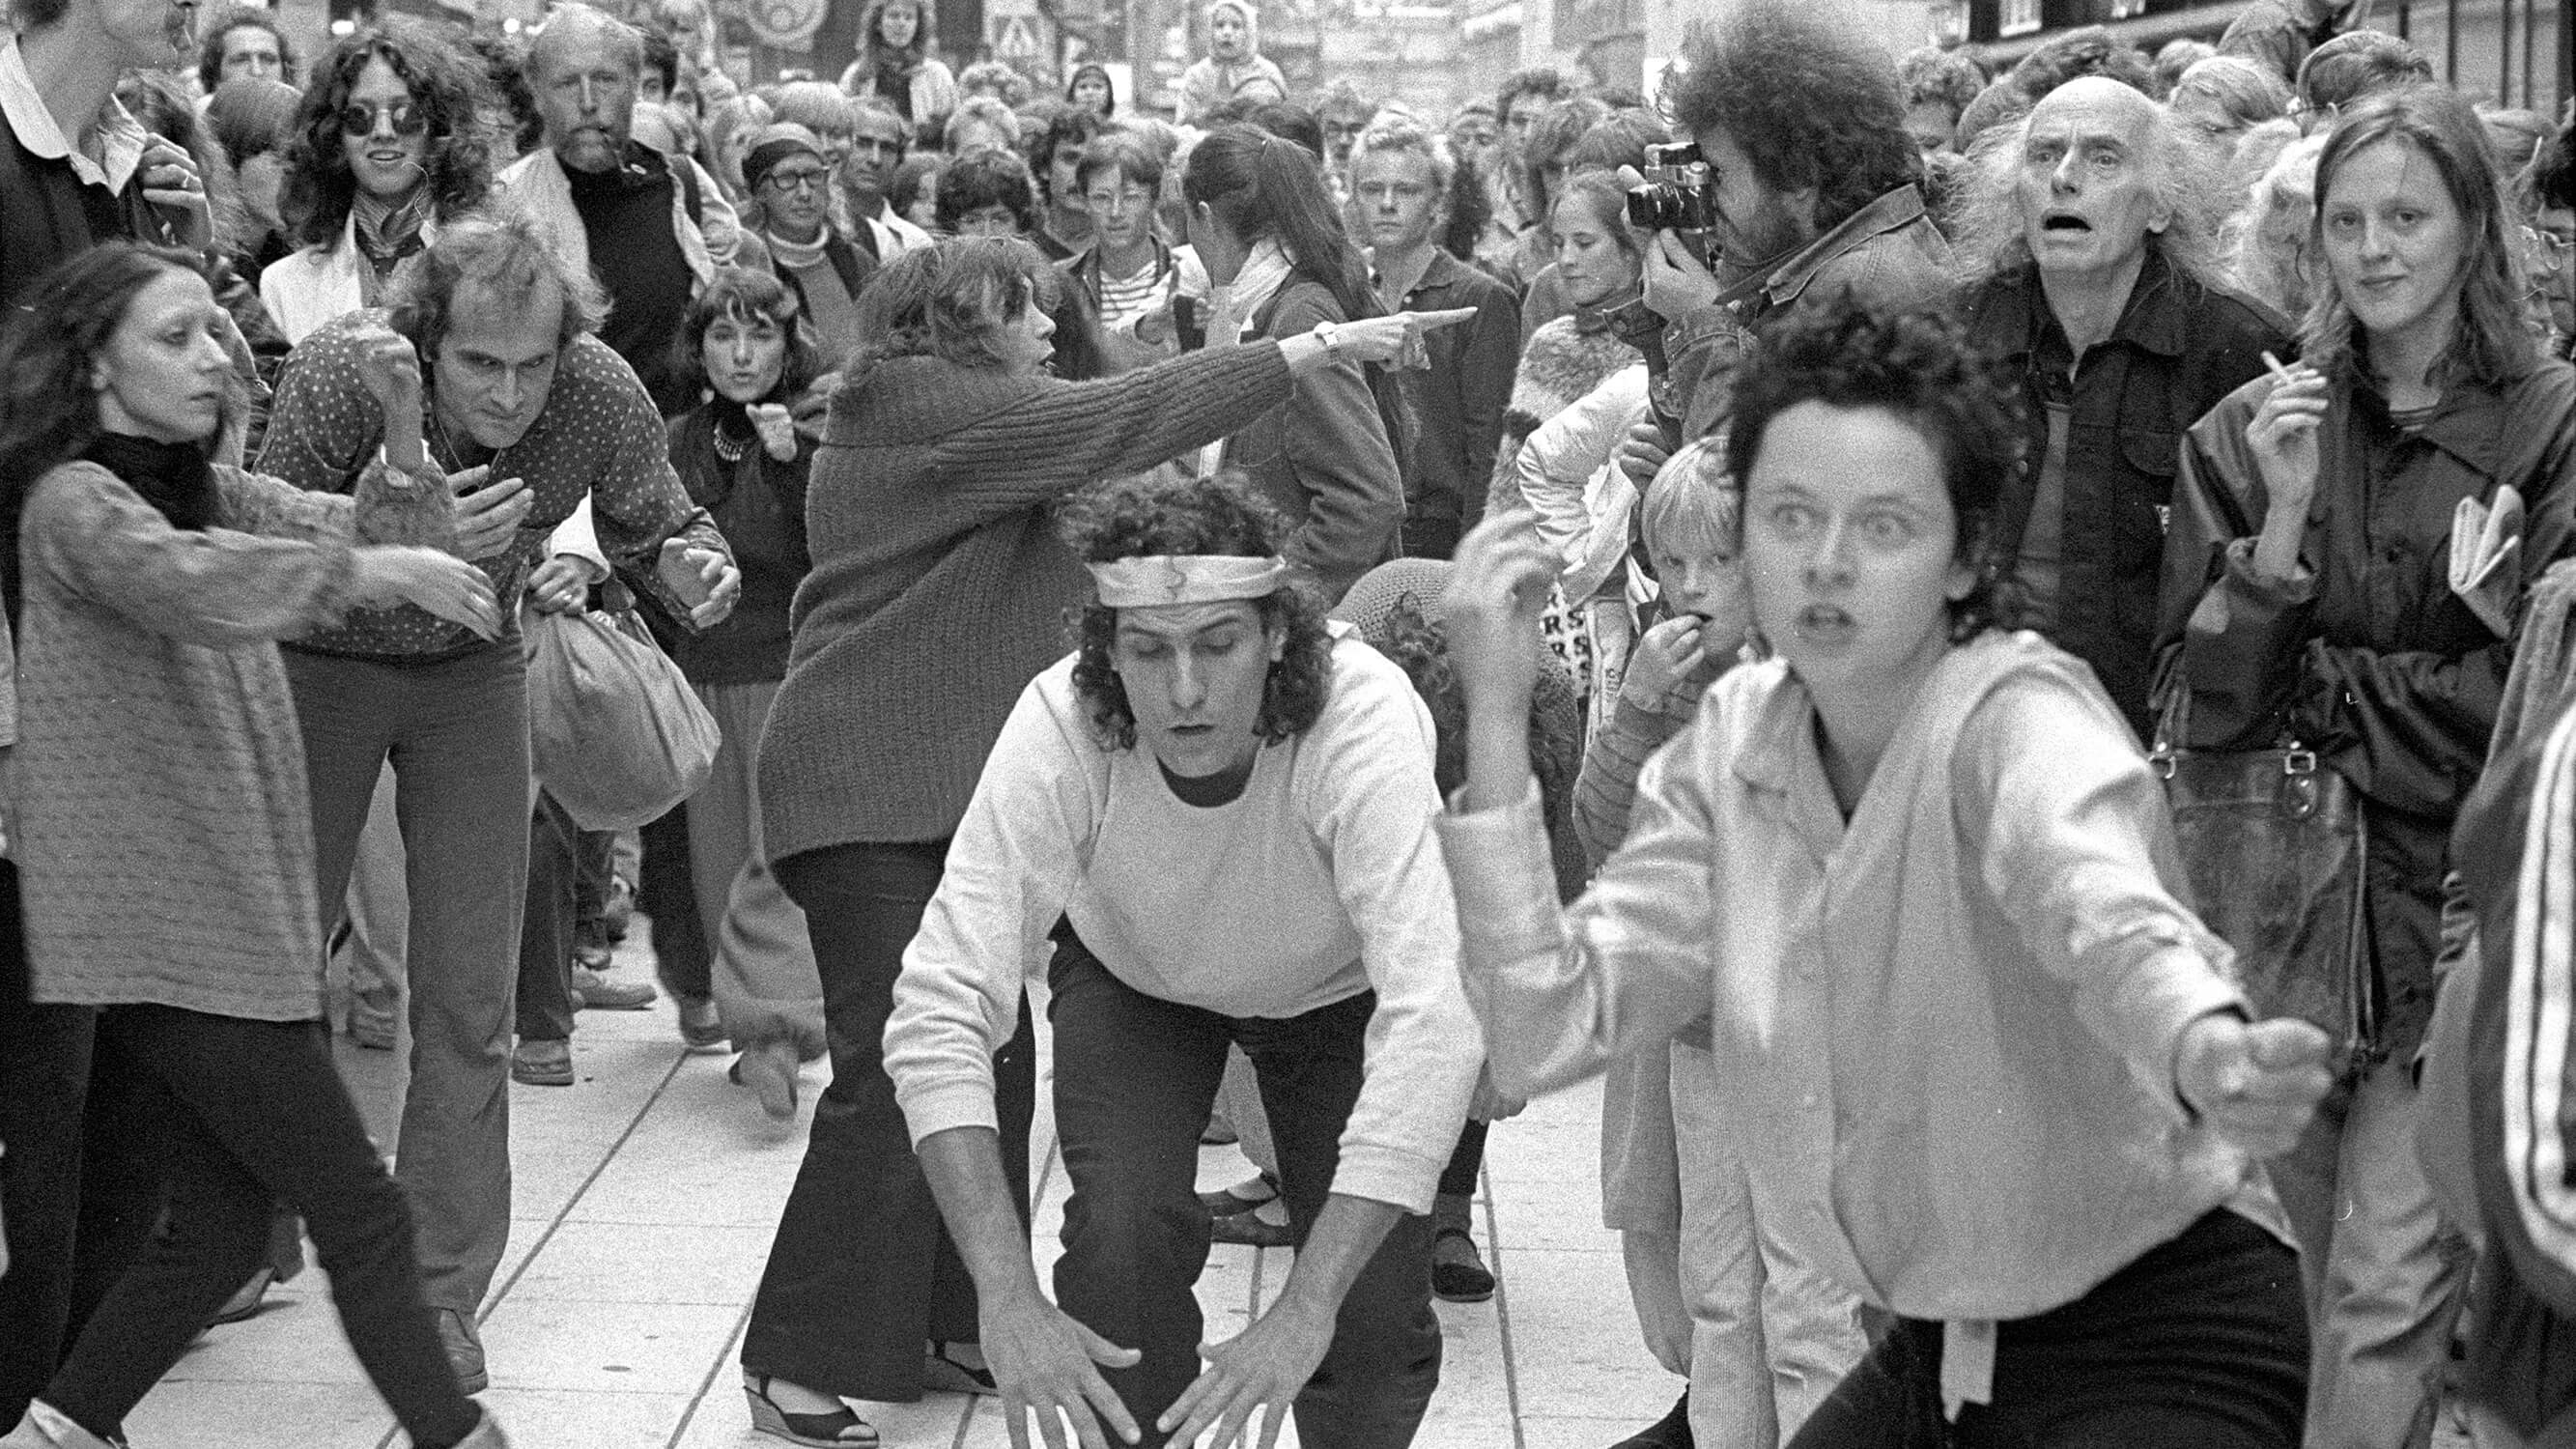 A group of artists is performing street theatre in the middle of a tightly packed mass of spectators.